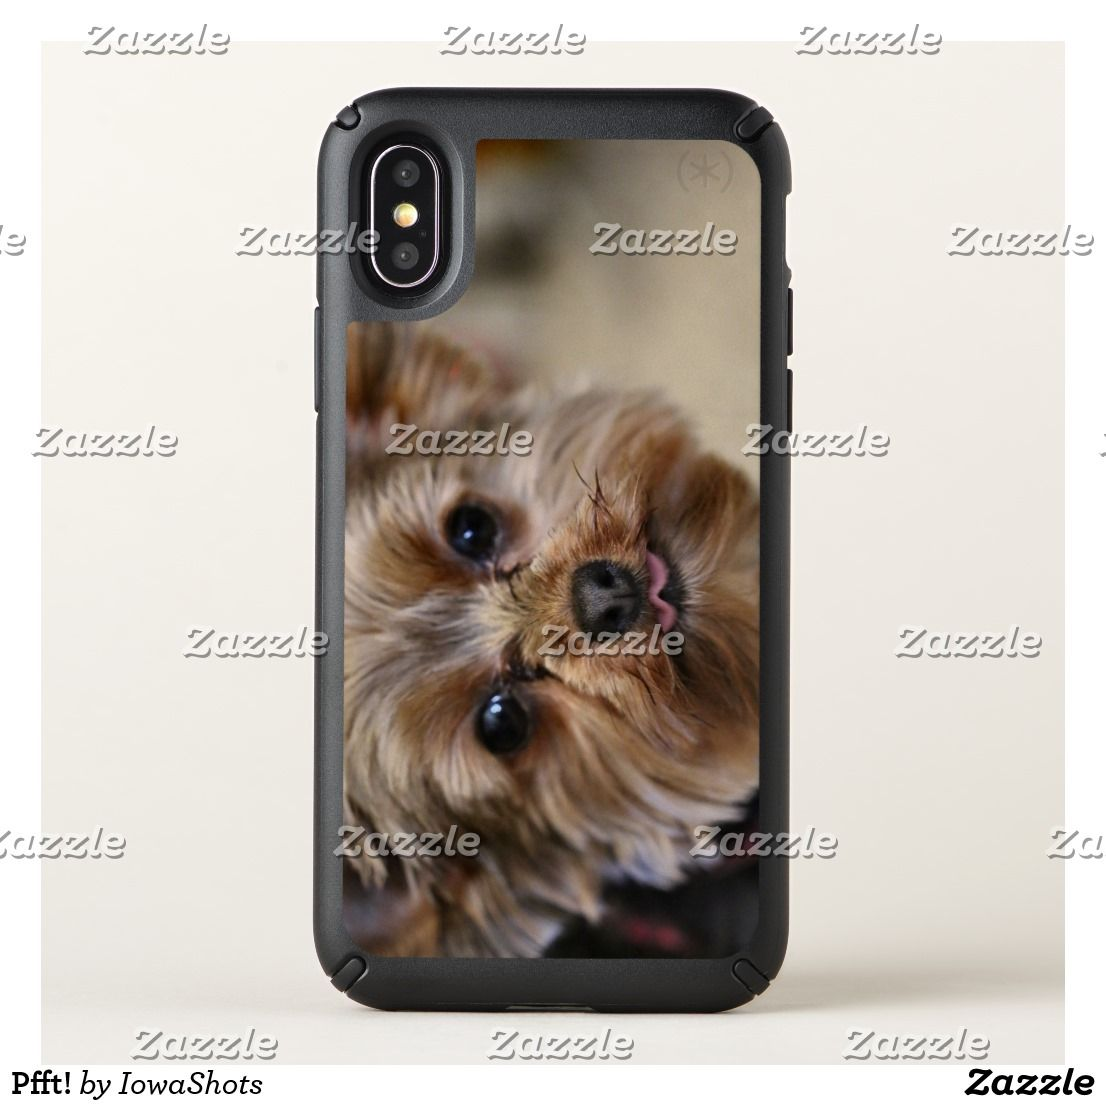 Pfft speck iphone x case iphone case covers iphone yorkie